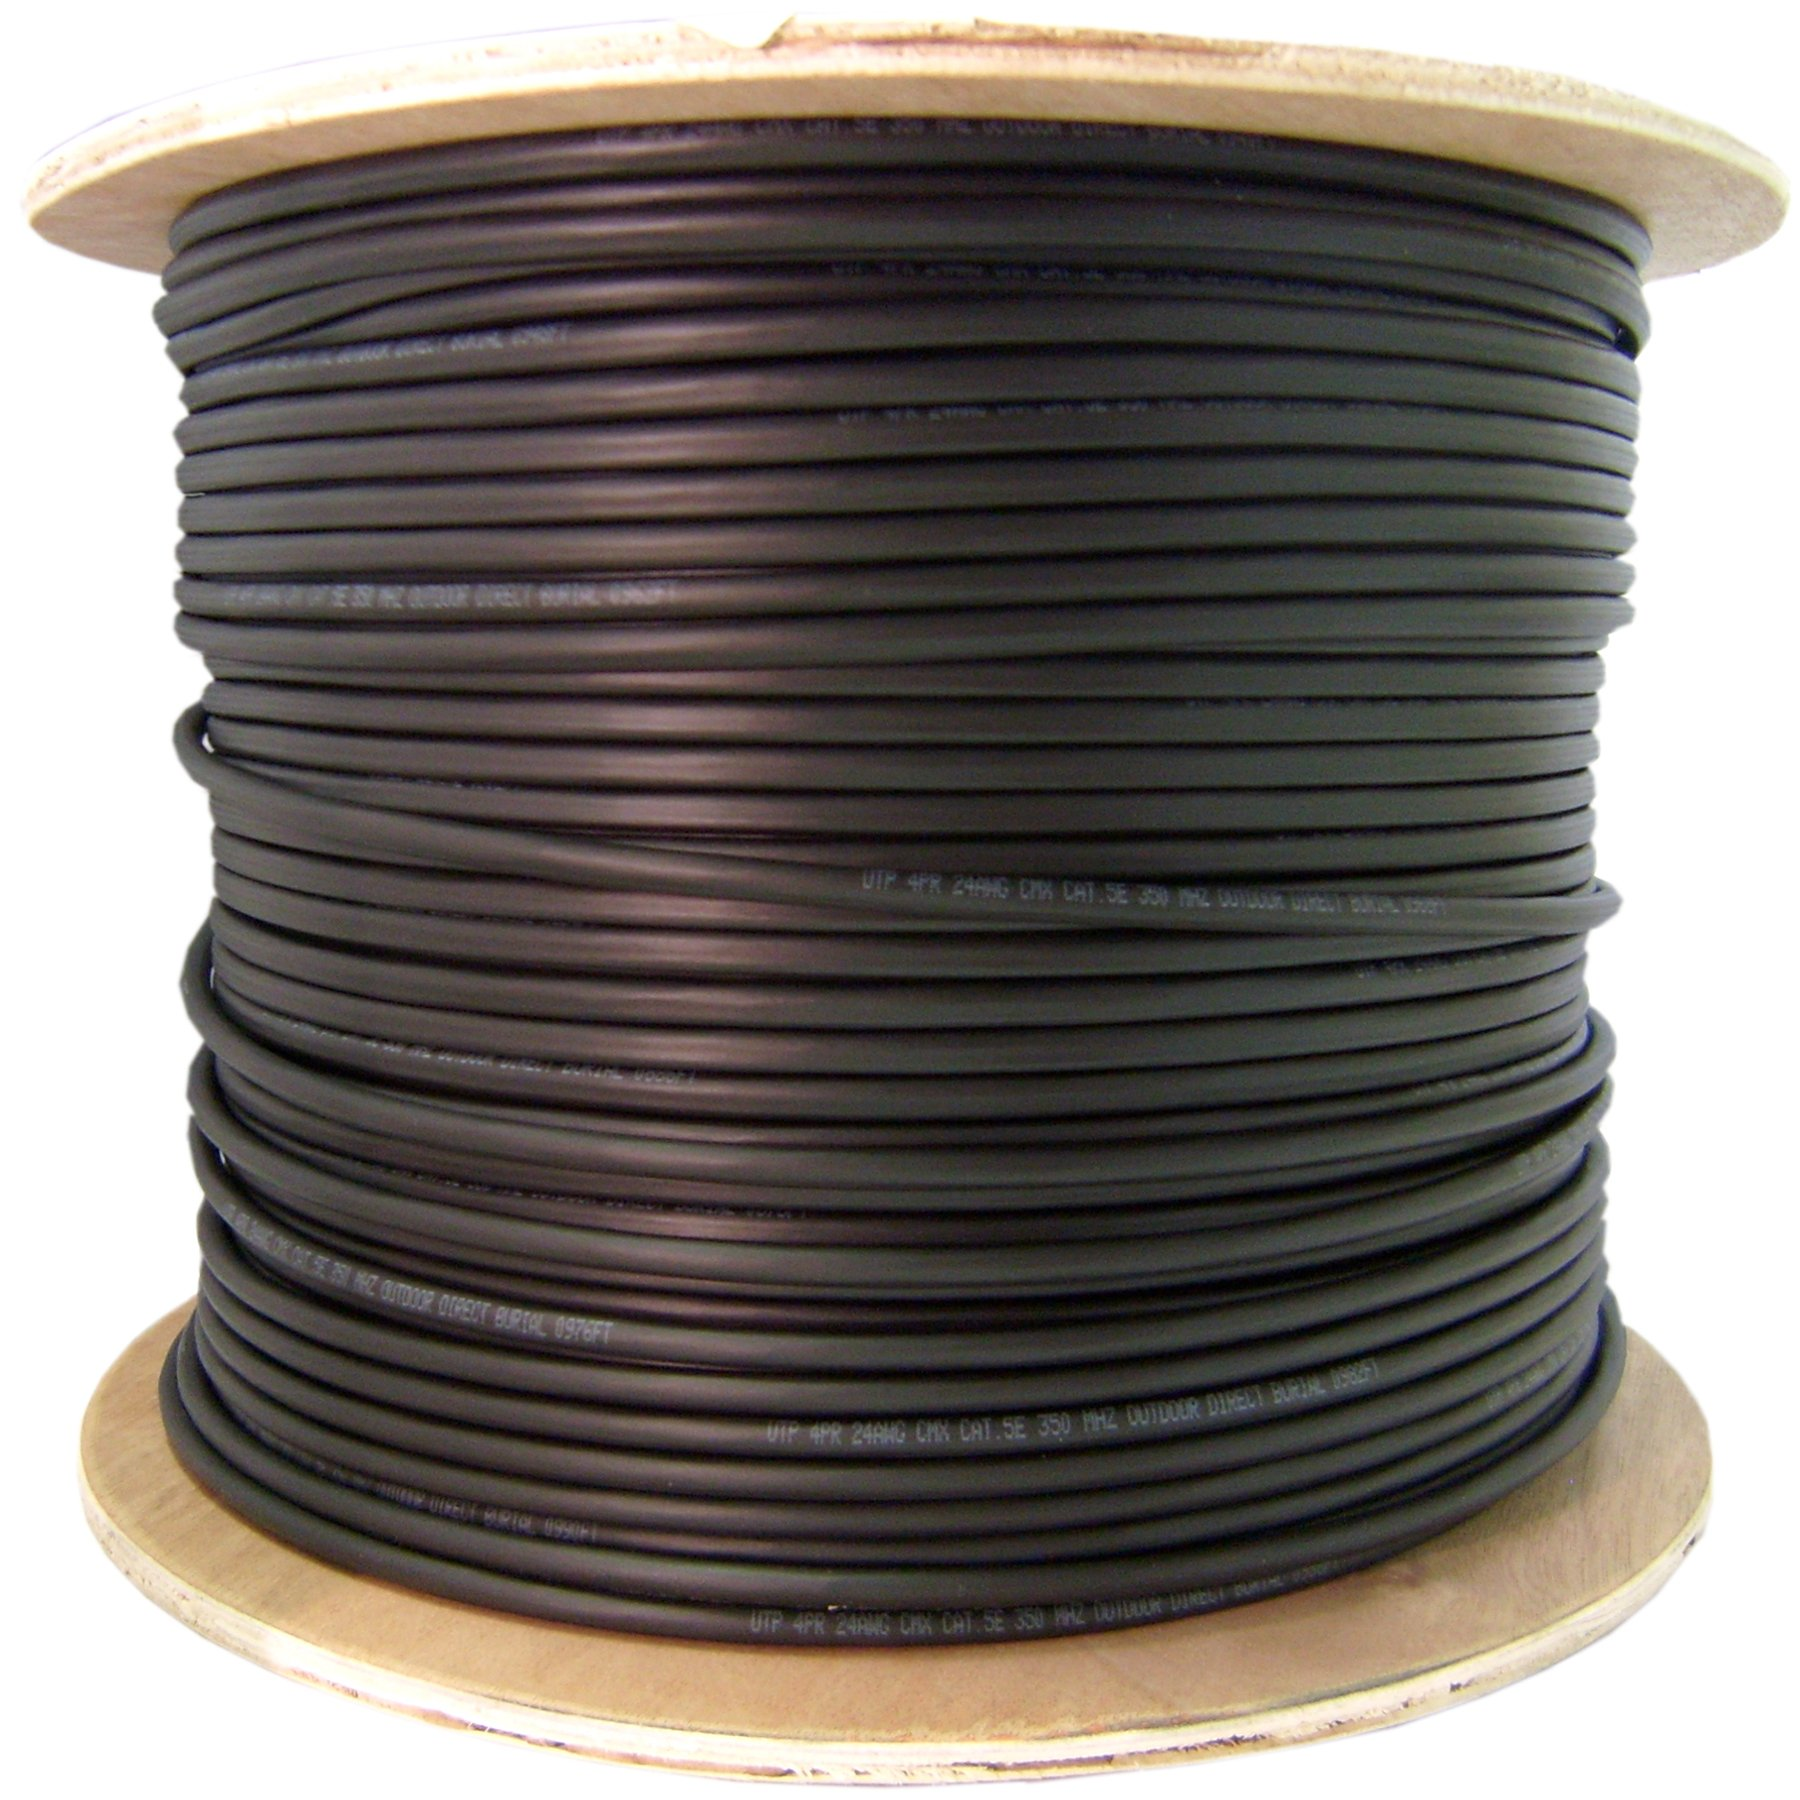 6 Fiber Indoor/Outdoor Fiber Optic Cable, Multimode 62.5/125, Plenum Rated, Black, Spool, 1000ft by CableWholesale